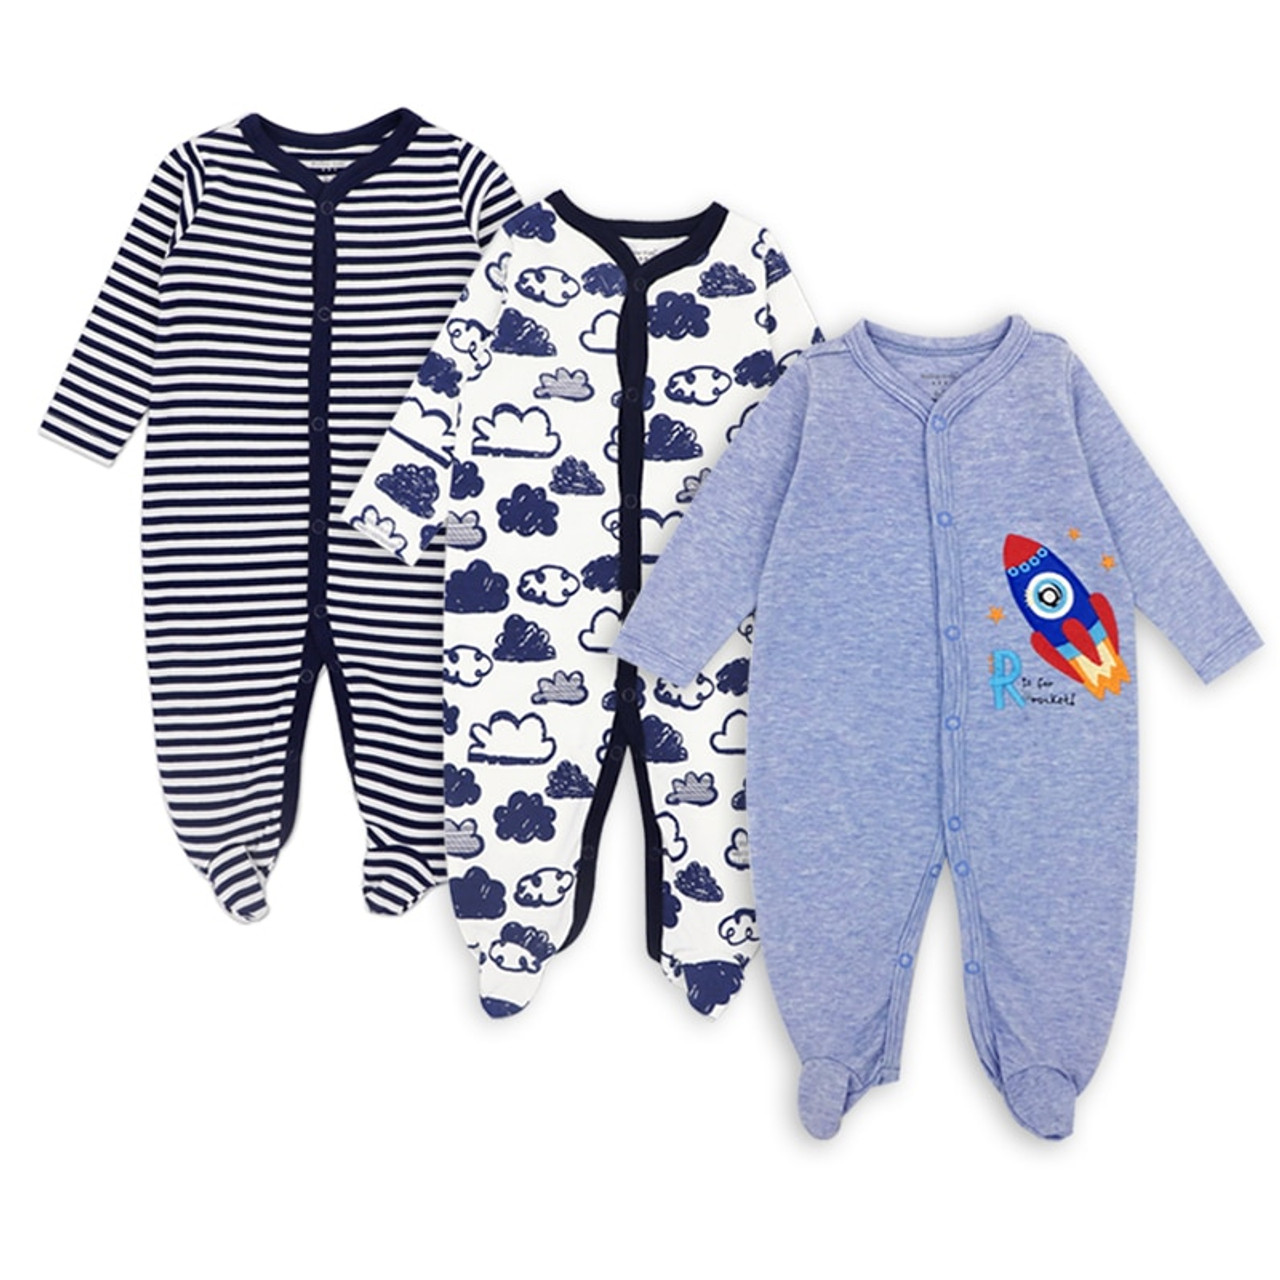 7e442349a Baby rompers Newborn Baby Girls Boys Clothes 100% Cotton Long ...